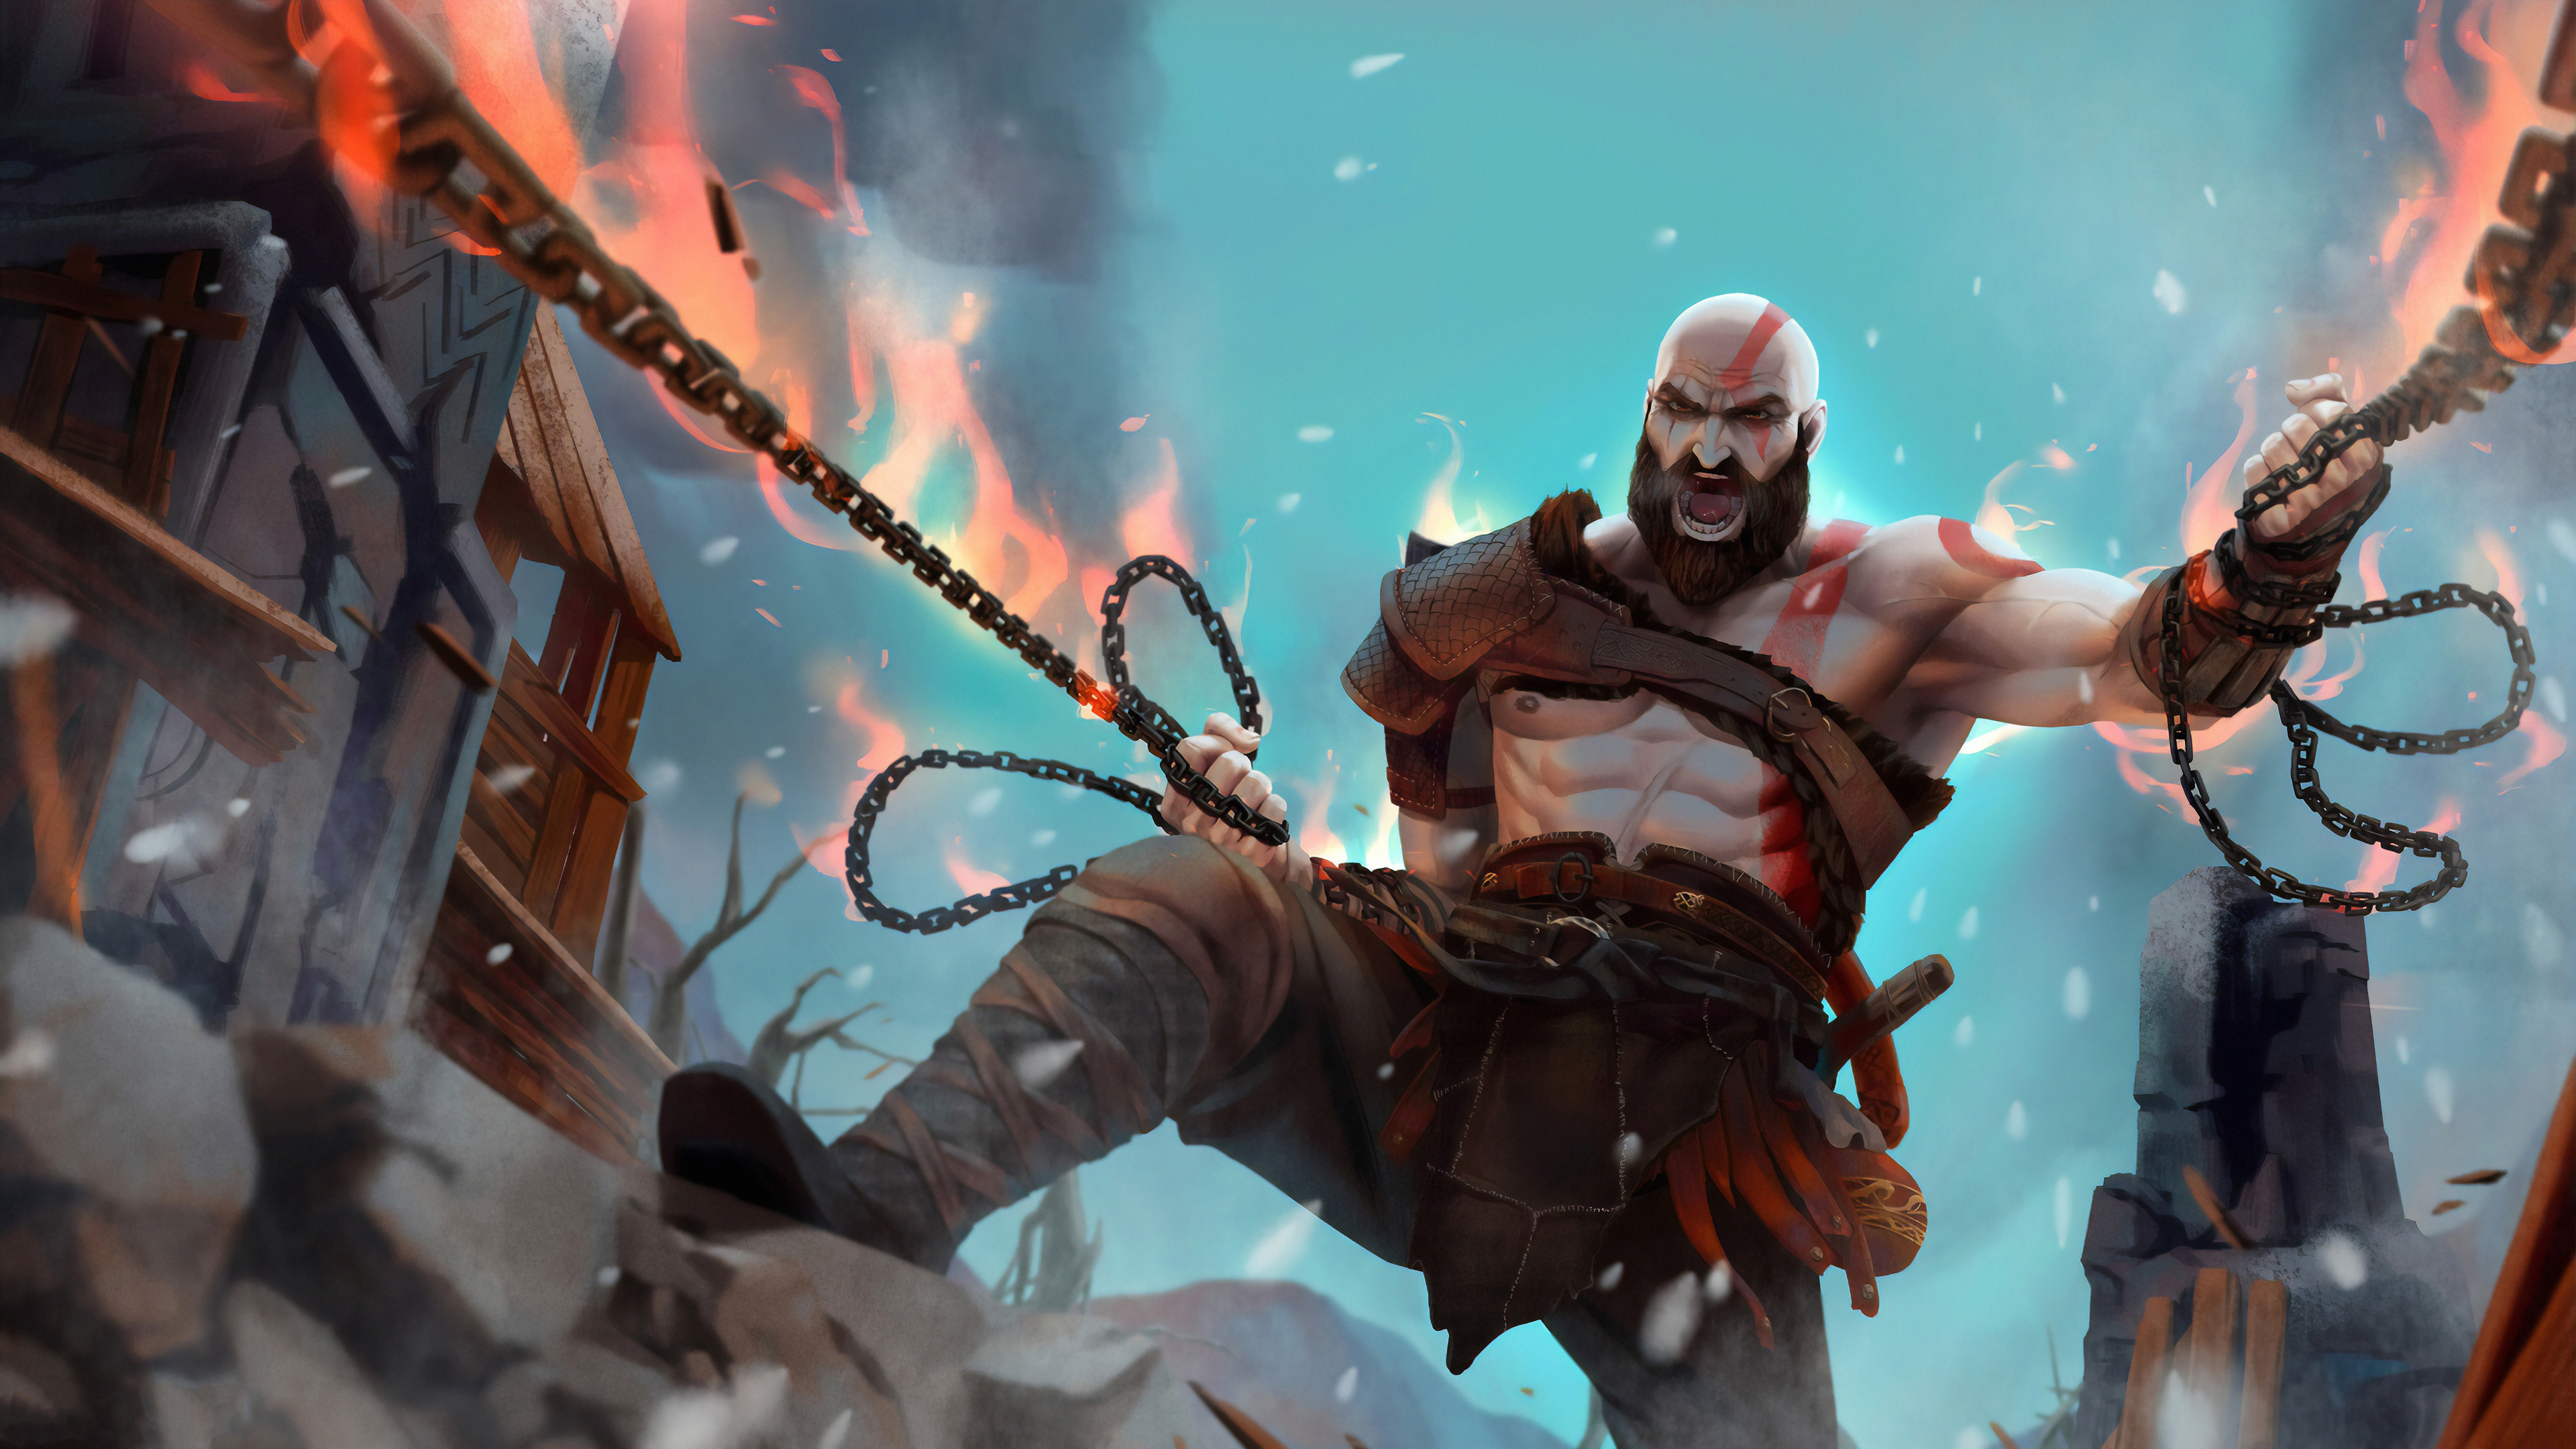 kratos artwork new 1572369943 - Kratos Artwork New - kratos wallpapers, hd-wallpapers, god of war wallpapers, digital art wallpapers, artwork wallpapers, artstation wallpapers, 4k-wallpapers